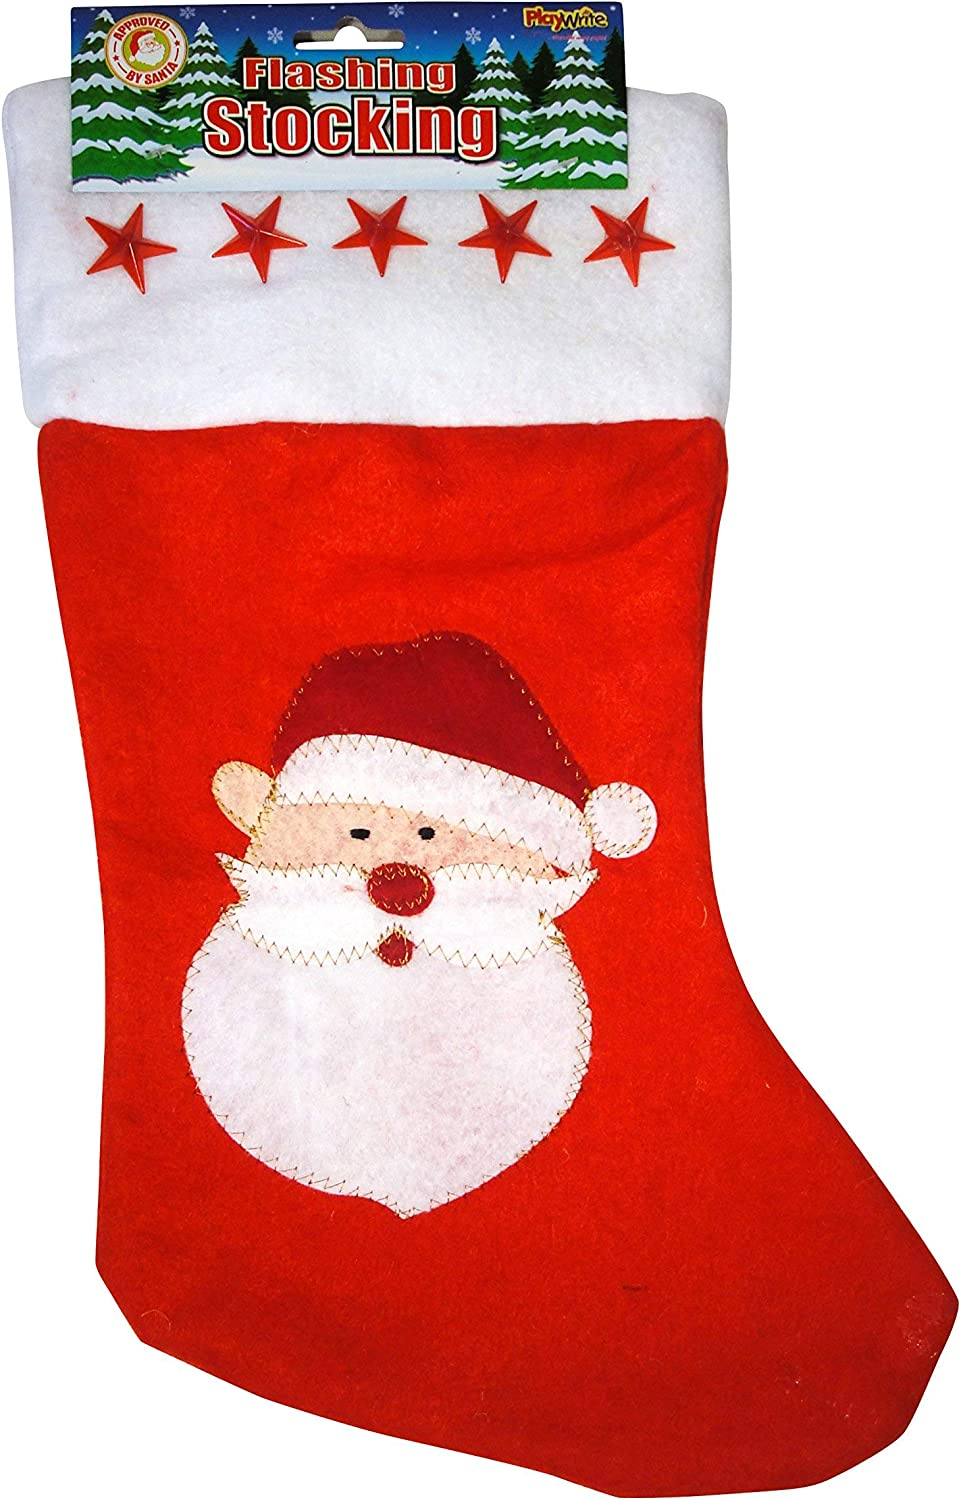 Playwrite 2 Assorted Stockings with LED Lights